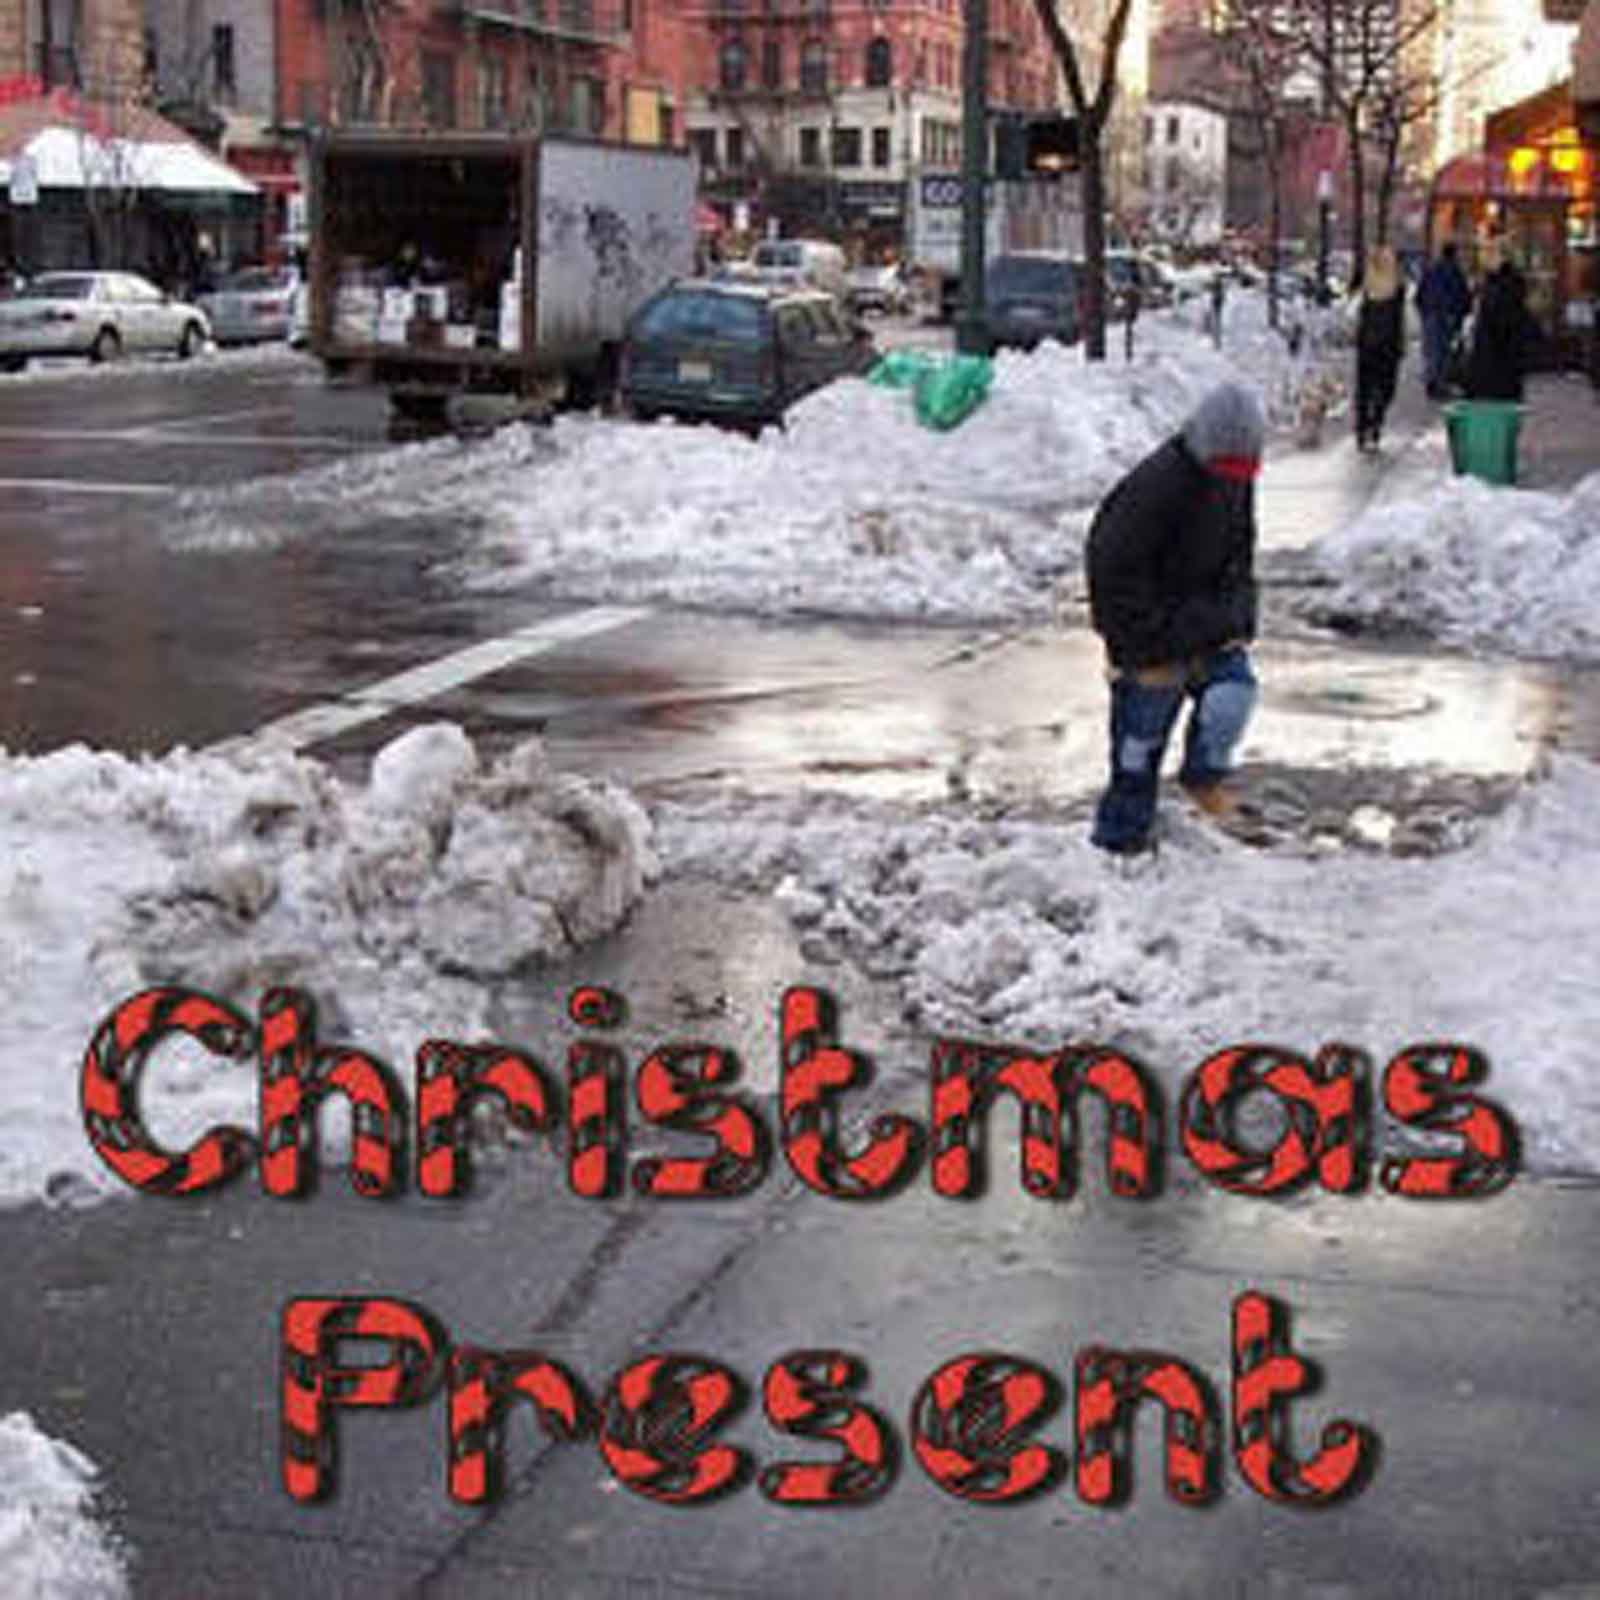 Christmas Present - 2005 (LWR Productions)